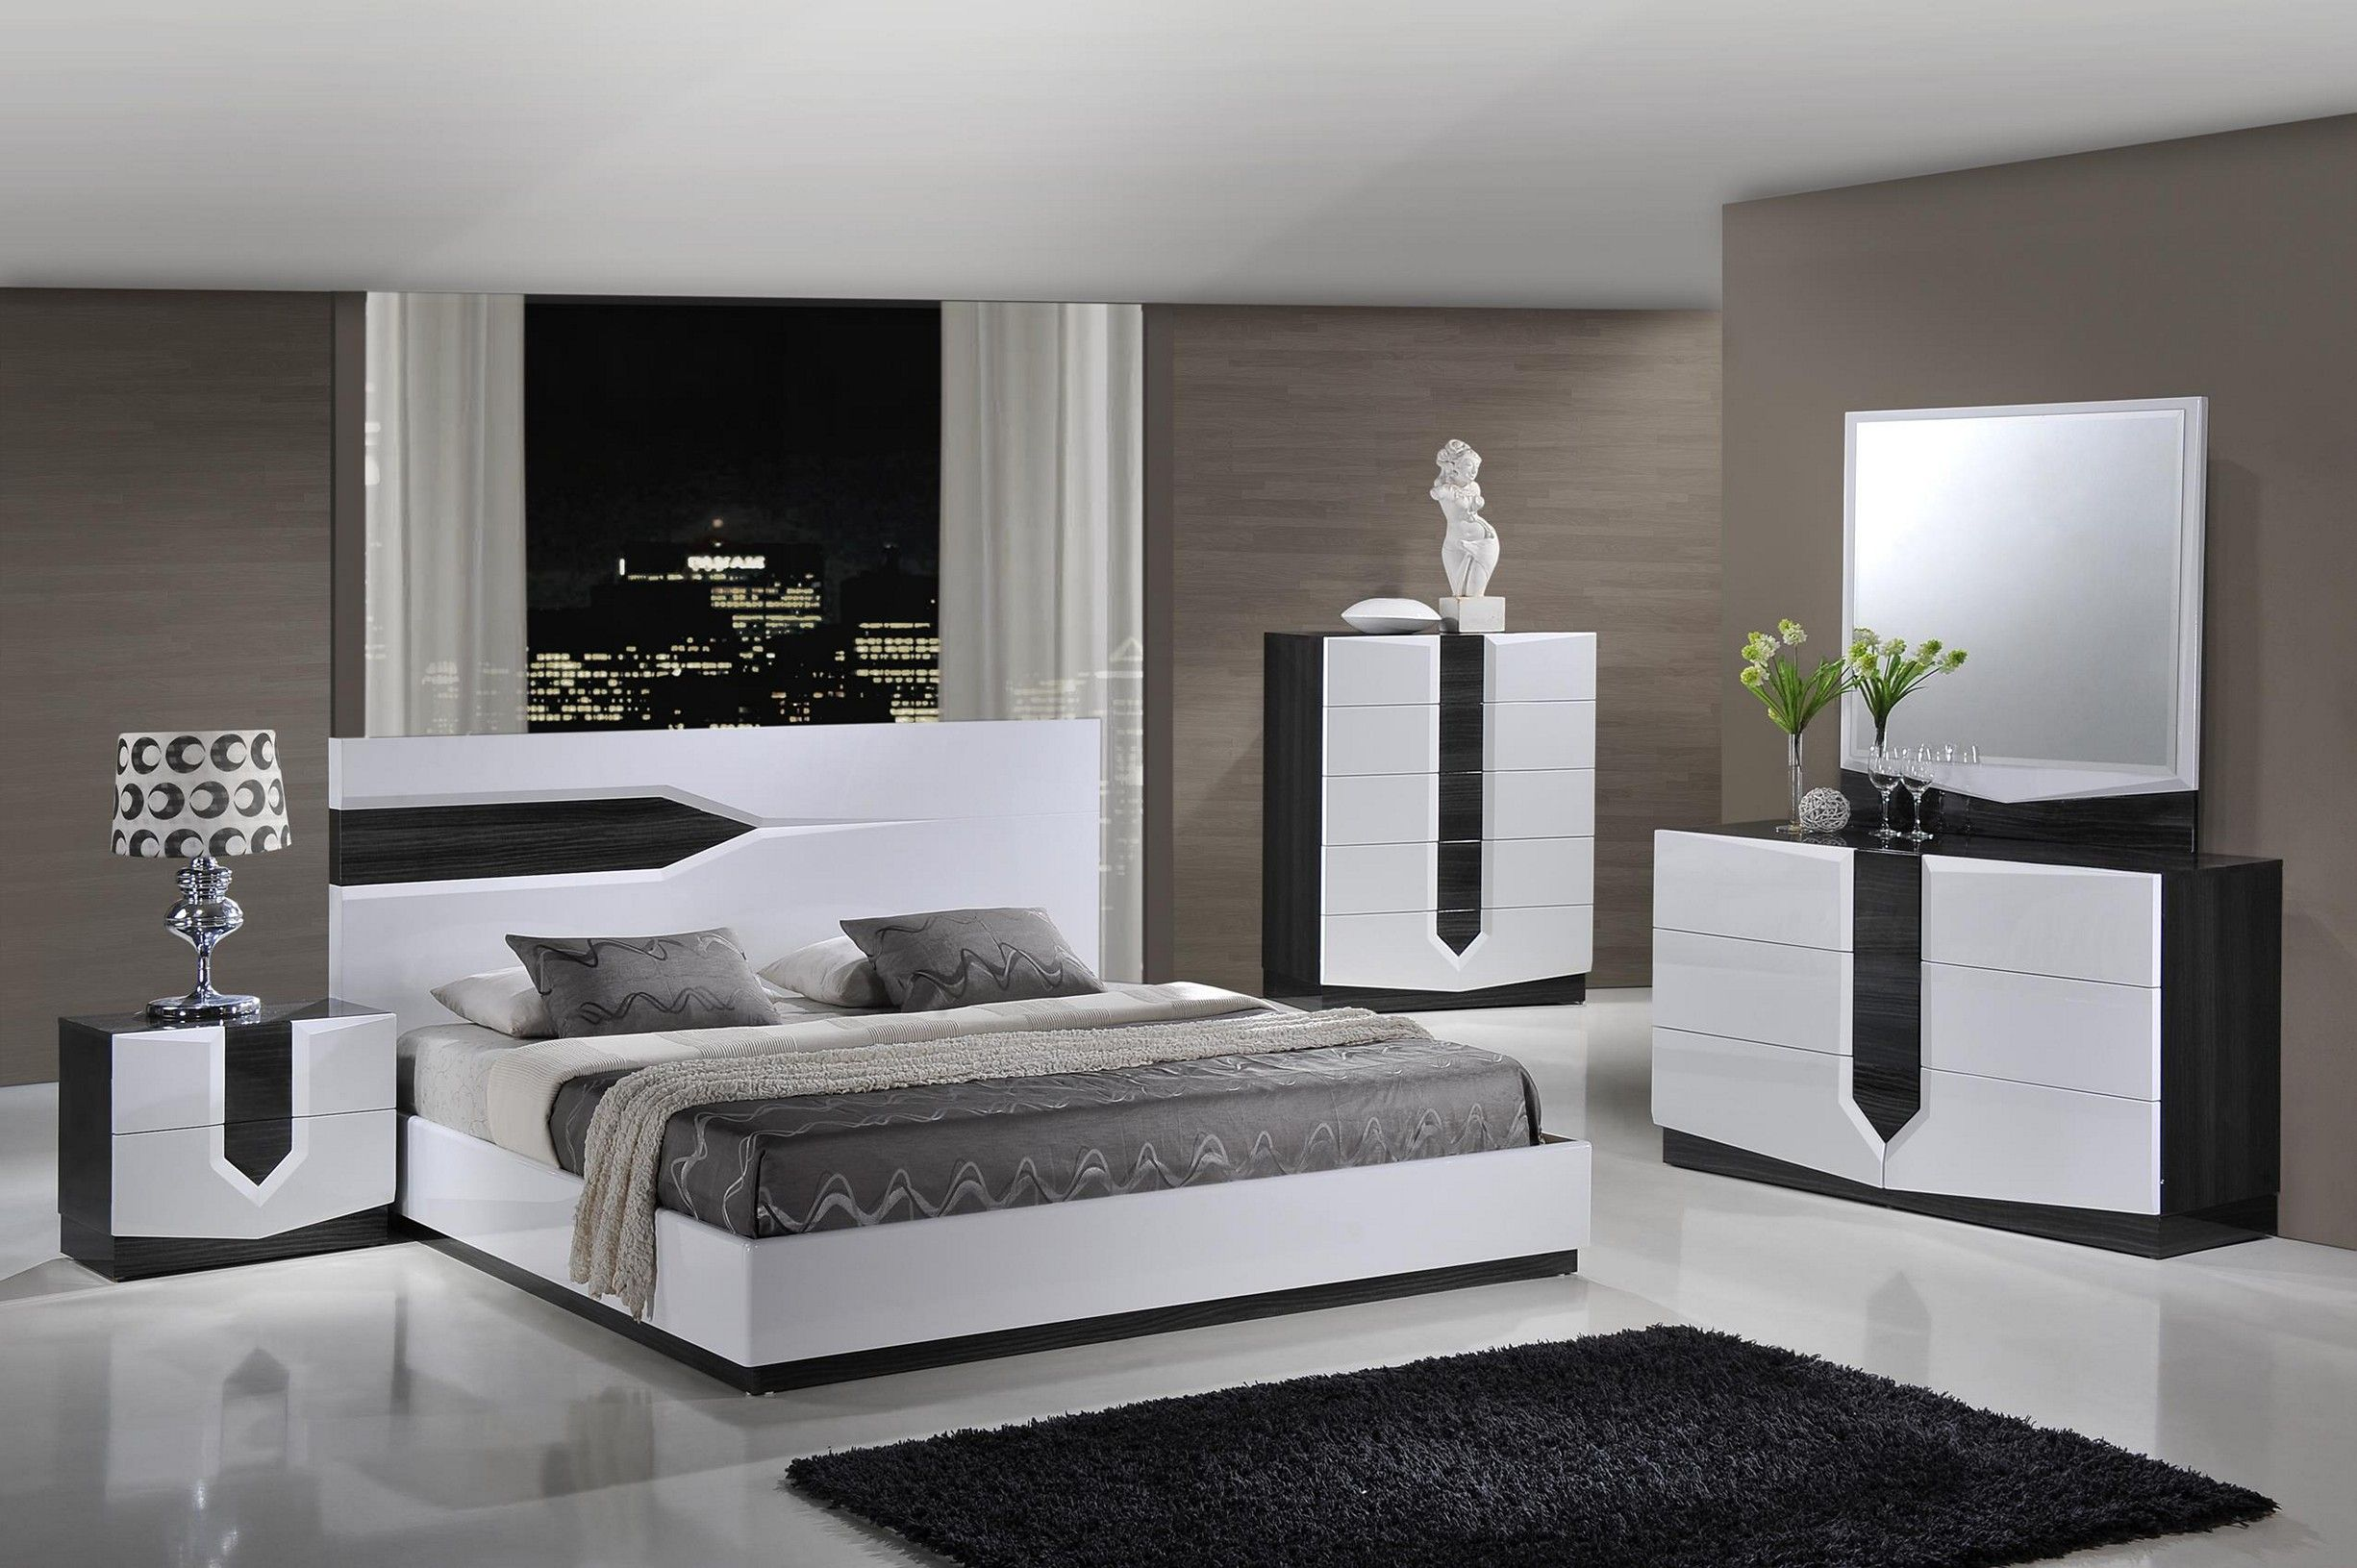 Black and White Bedroom Furniture Sets | Black and White Bedroom ...